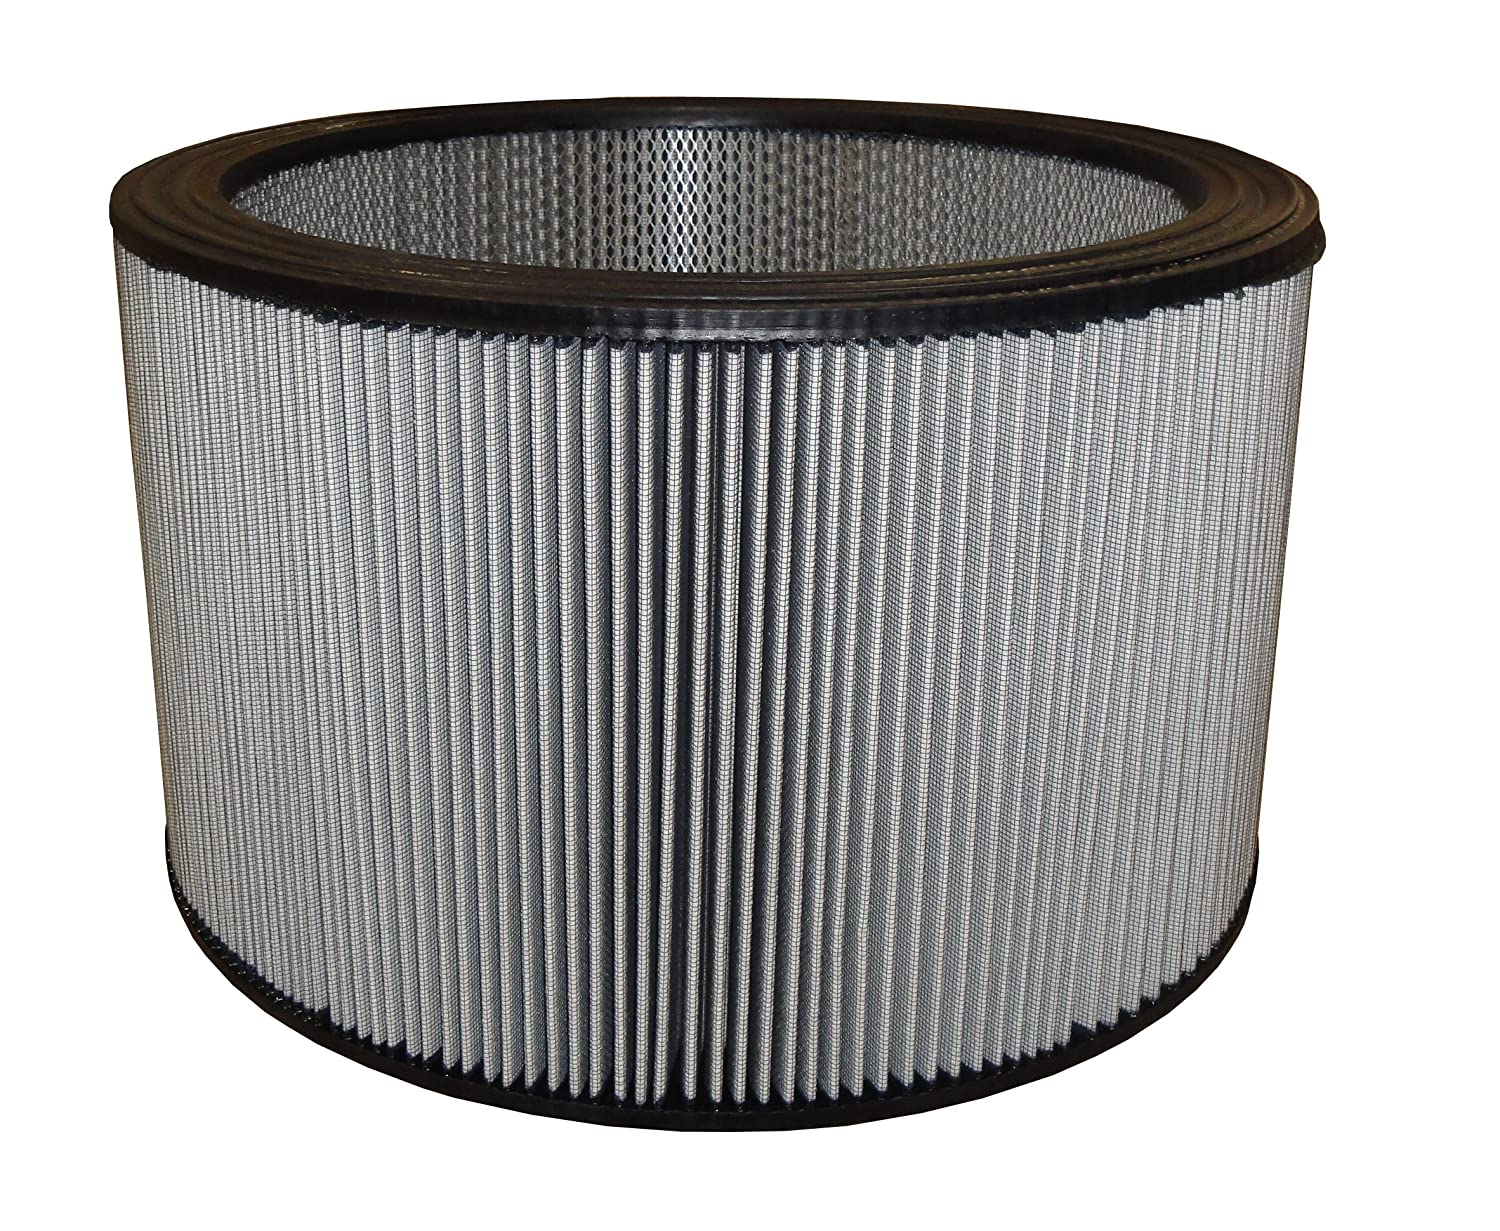 Solberg 32-25 Polyester Ranking National uniform free shipping TOP9 Filter 14 Cartridge Replacement Blower